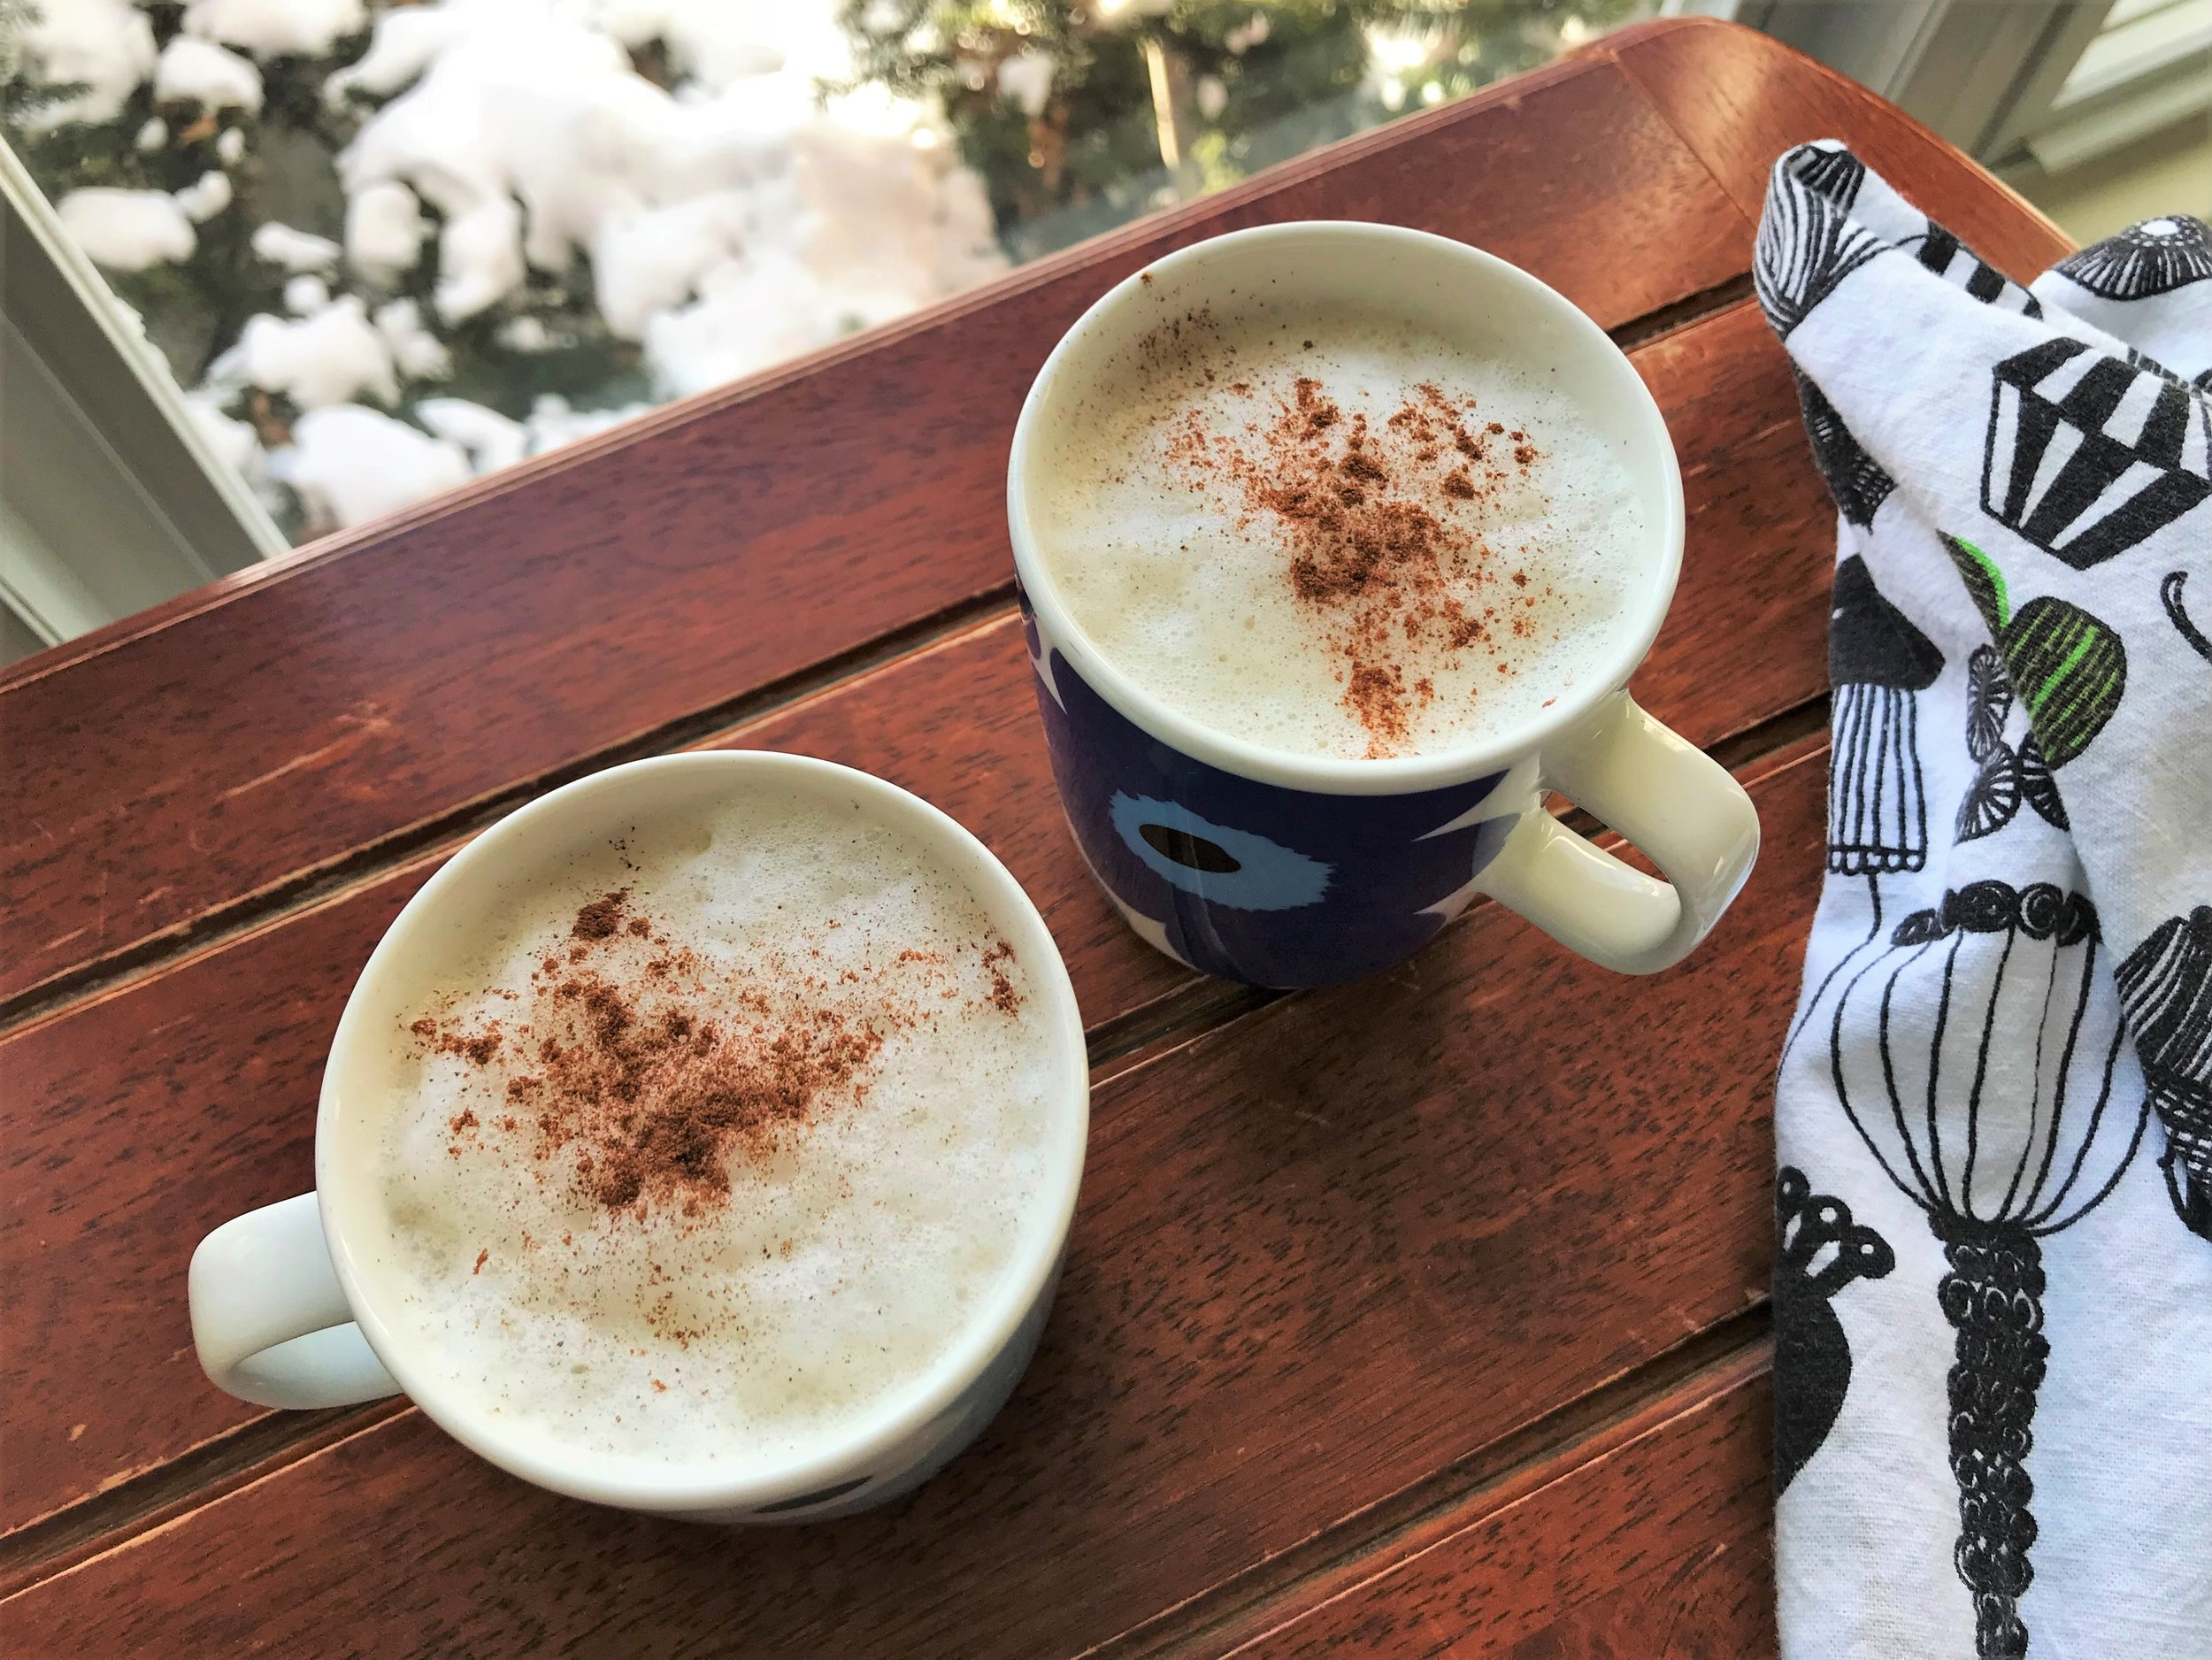 Warm, frothed Cinnamon Honey Milk made in the Adventure Kitchen.